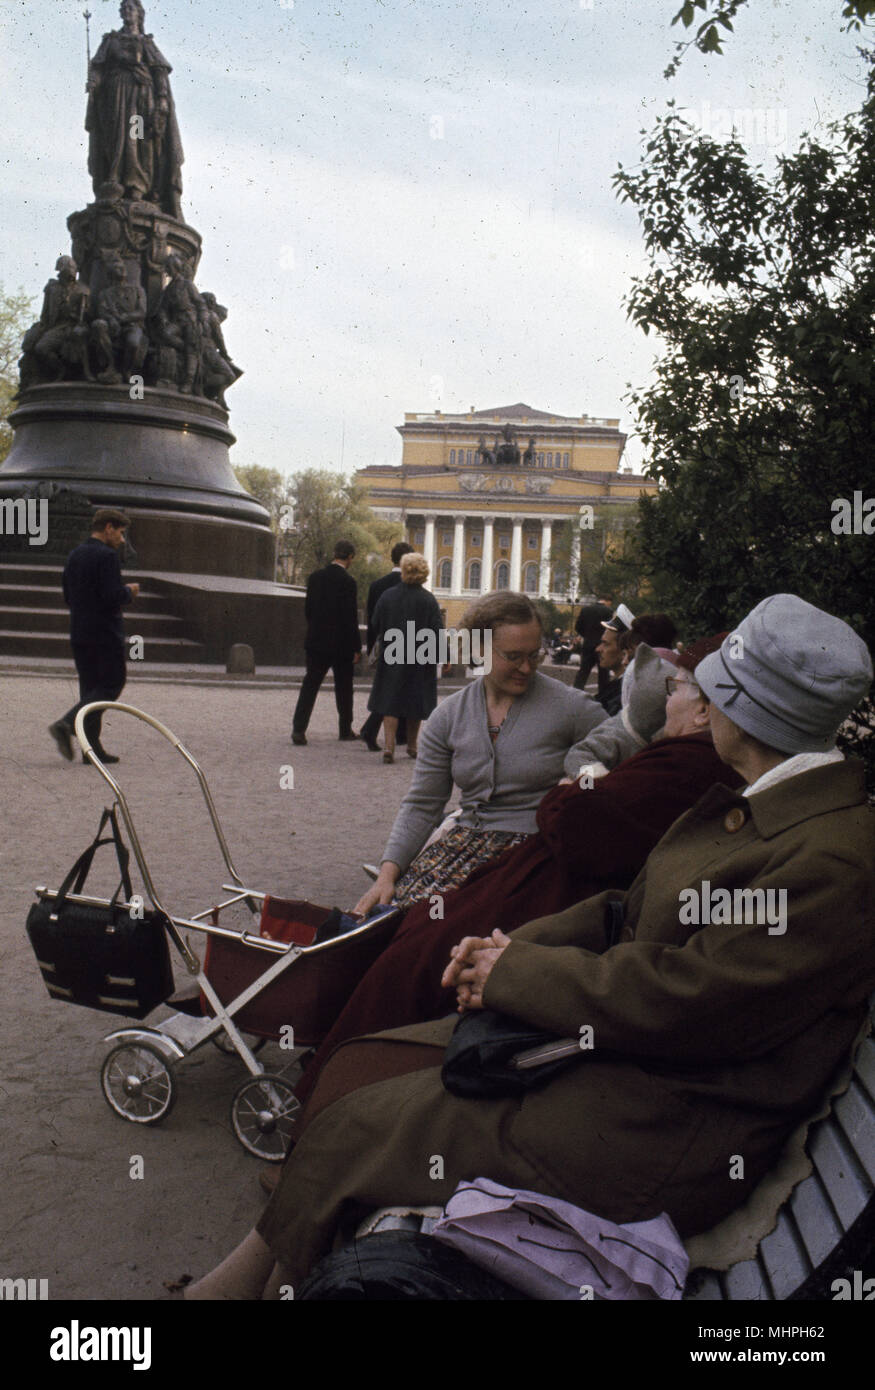 People sitting on a bench, Leningrad (St Petersburg), USSR, with a statue of Catherine the Great on the left and the Alexandrinsky Theatre in the background.       Date: circa 1960s Stock Photo